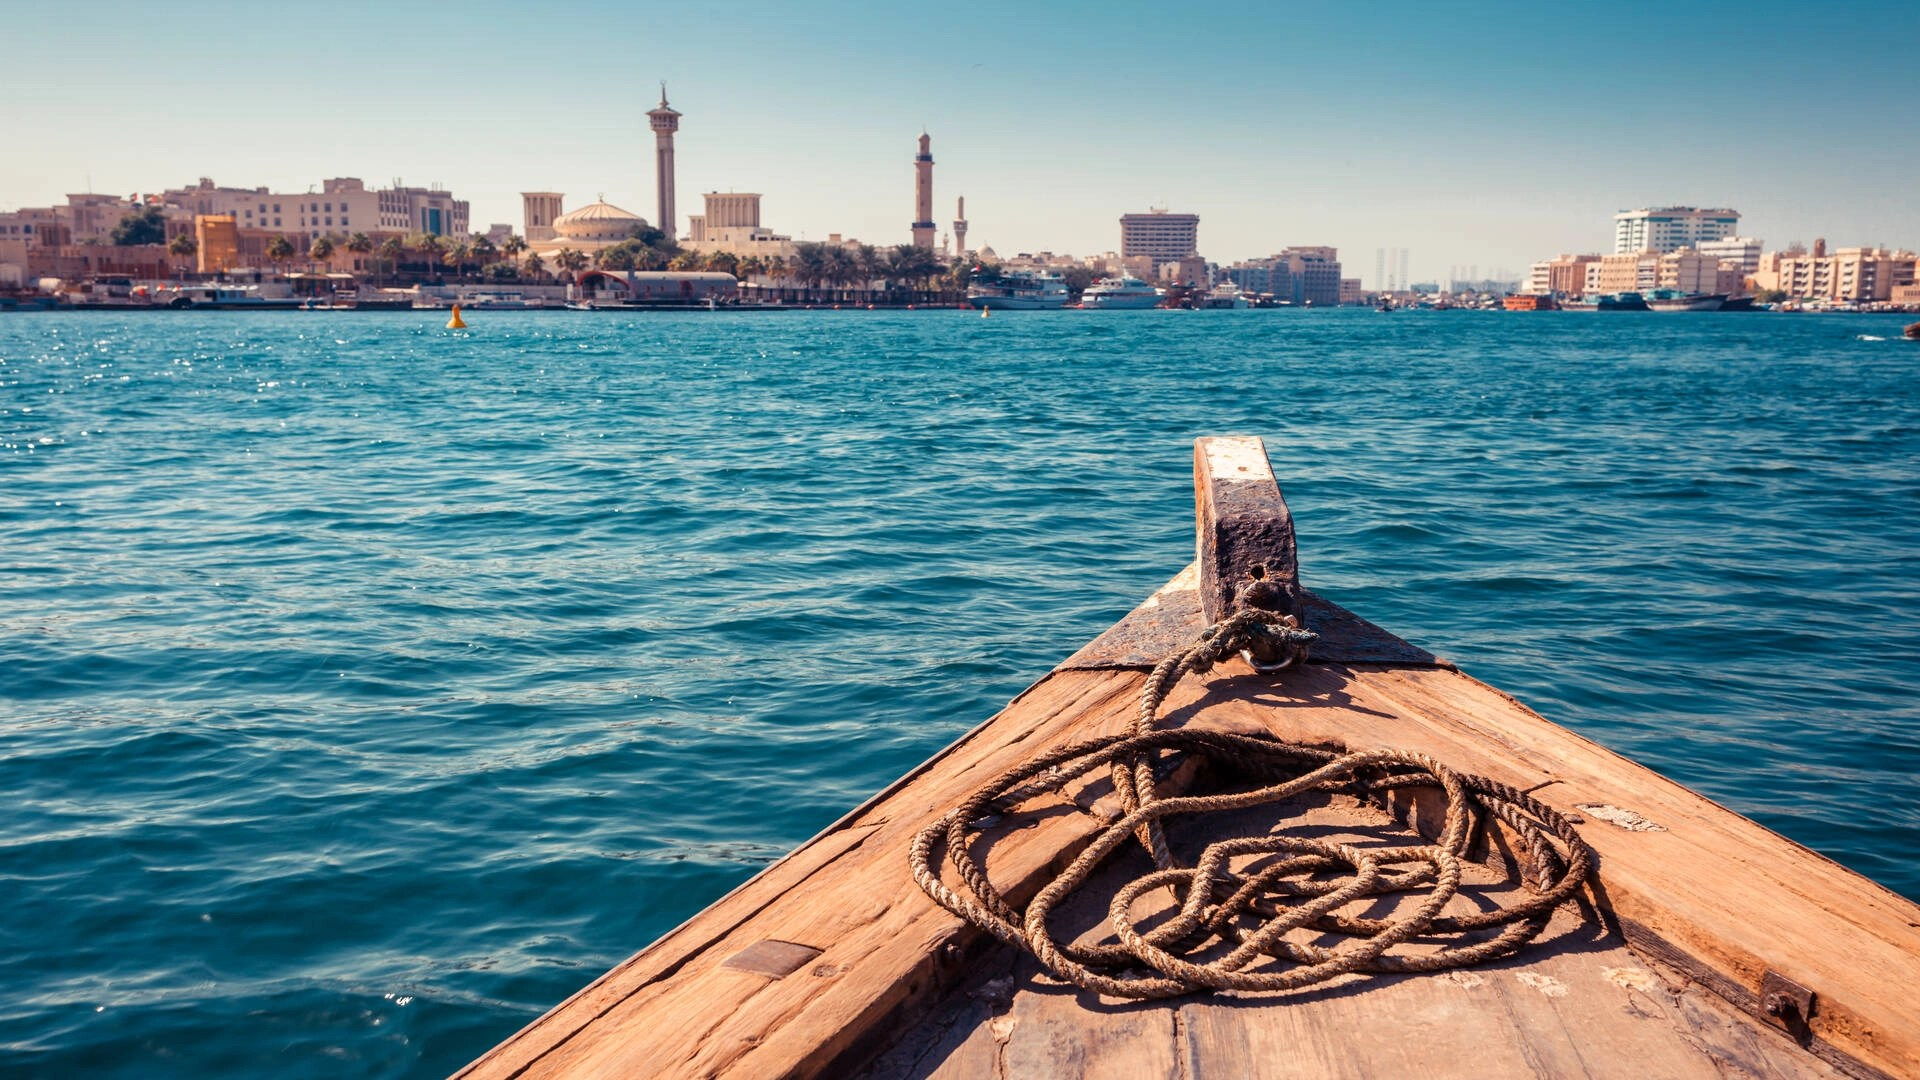 A guide to transportation in the United Arab Emirates